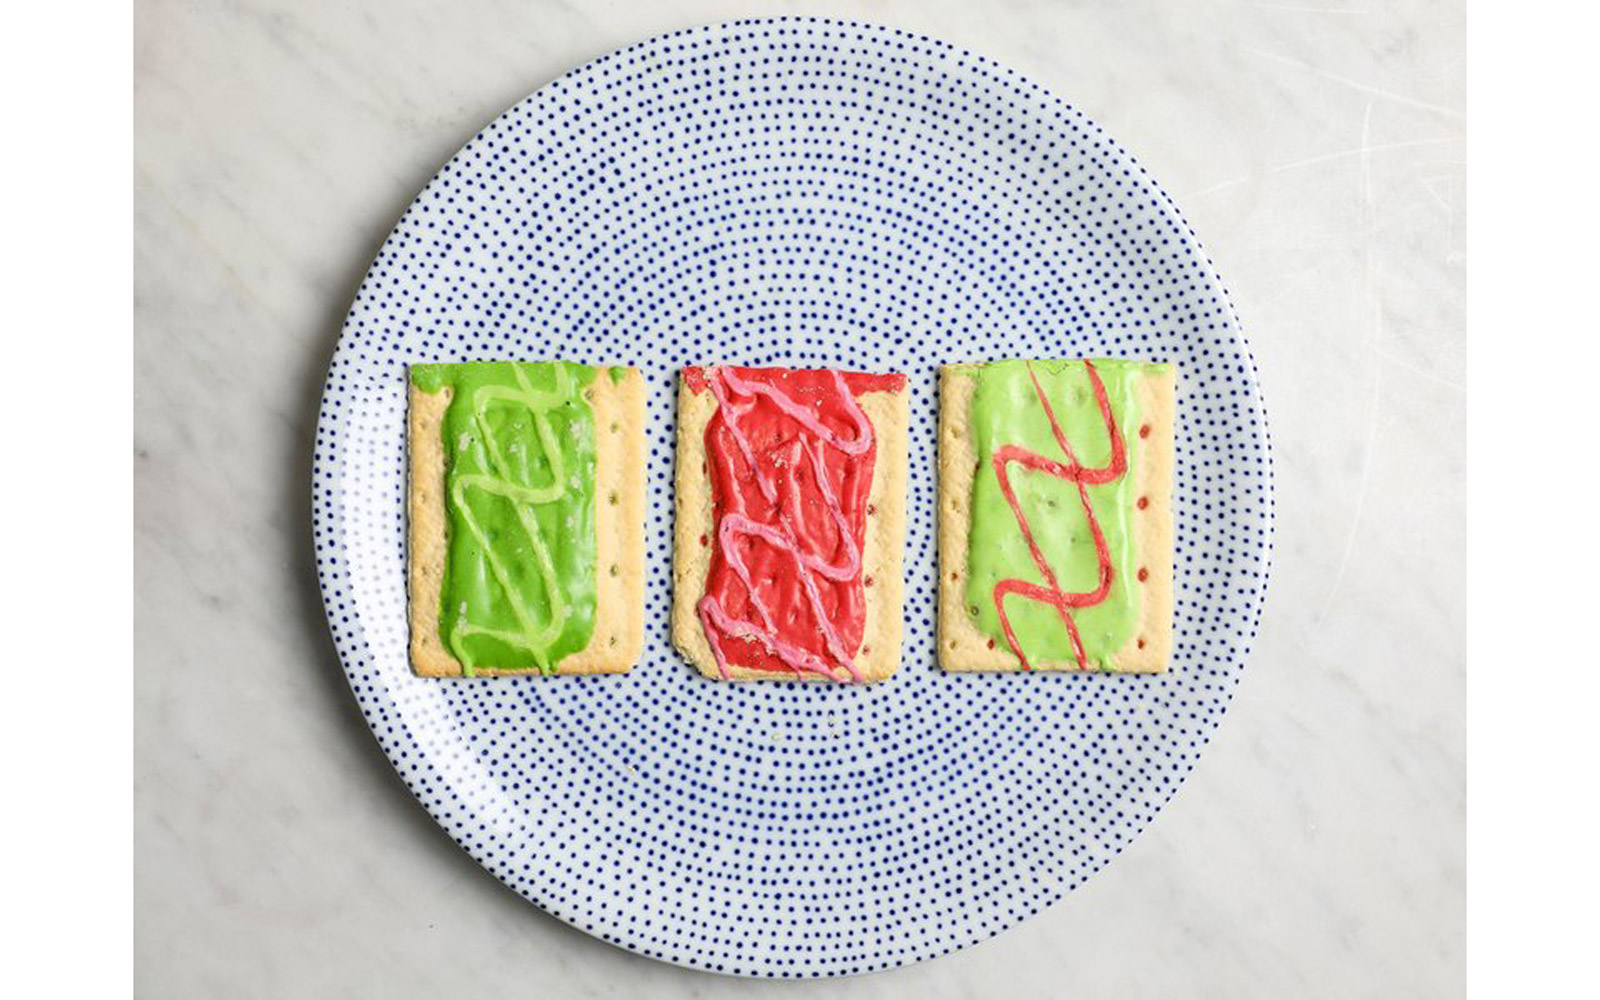 Jolly Rancher Green Apple, Jolly Rancher Cherry, and Jolly Rancher Watermelon Poptarts